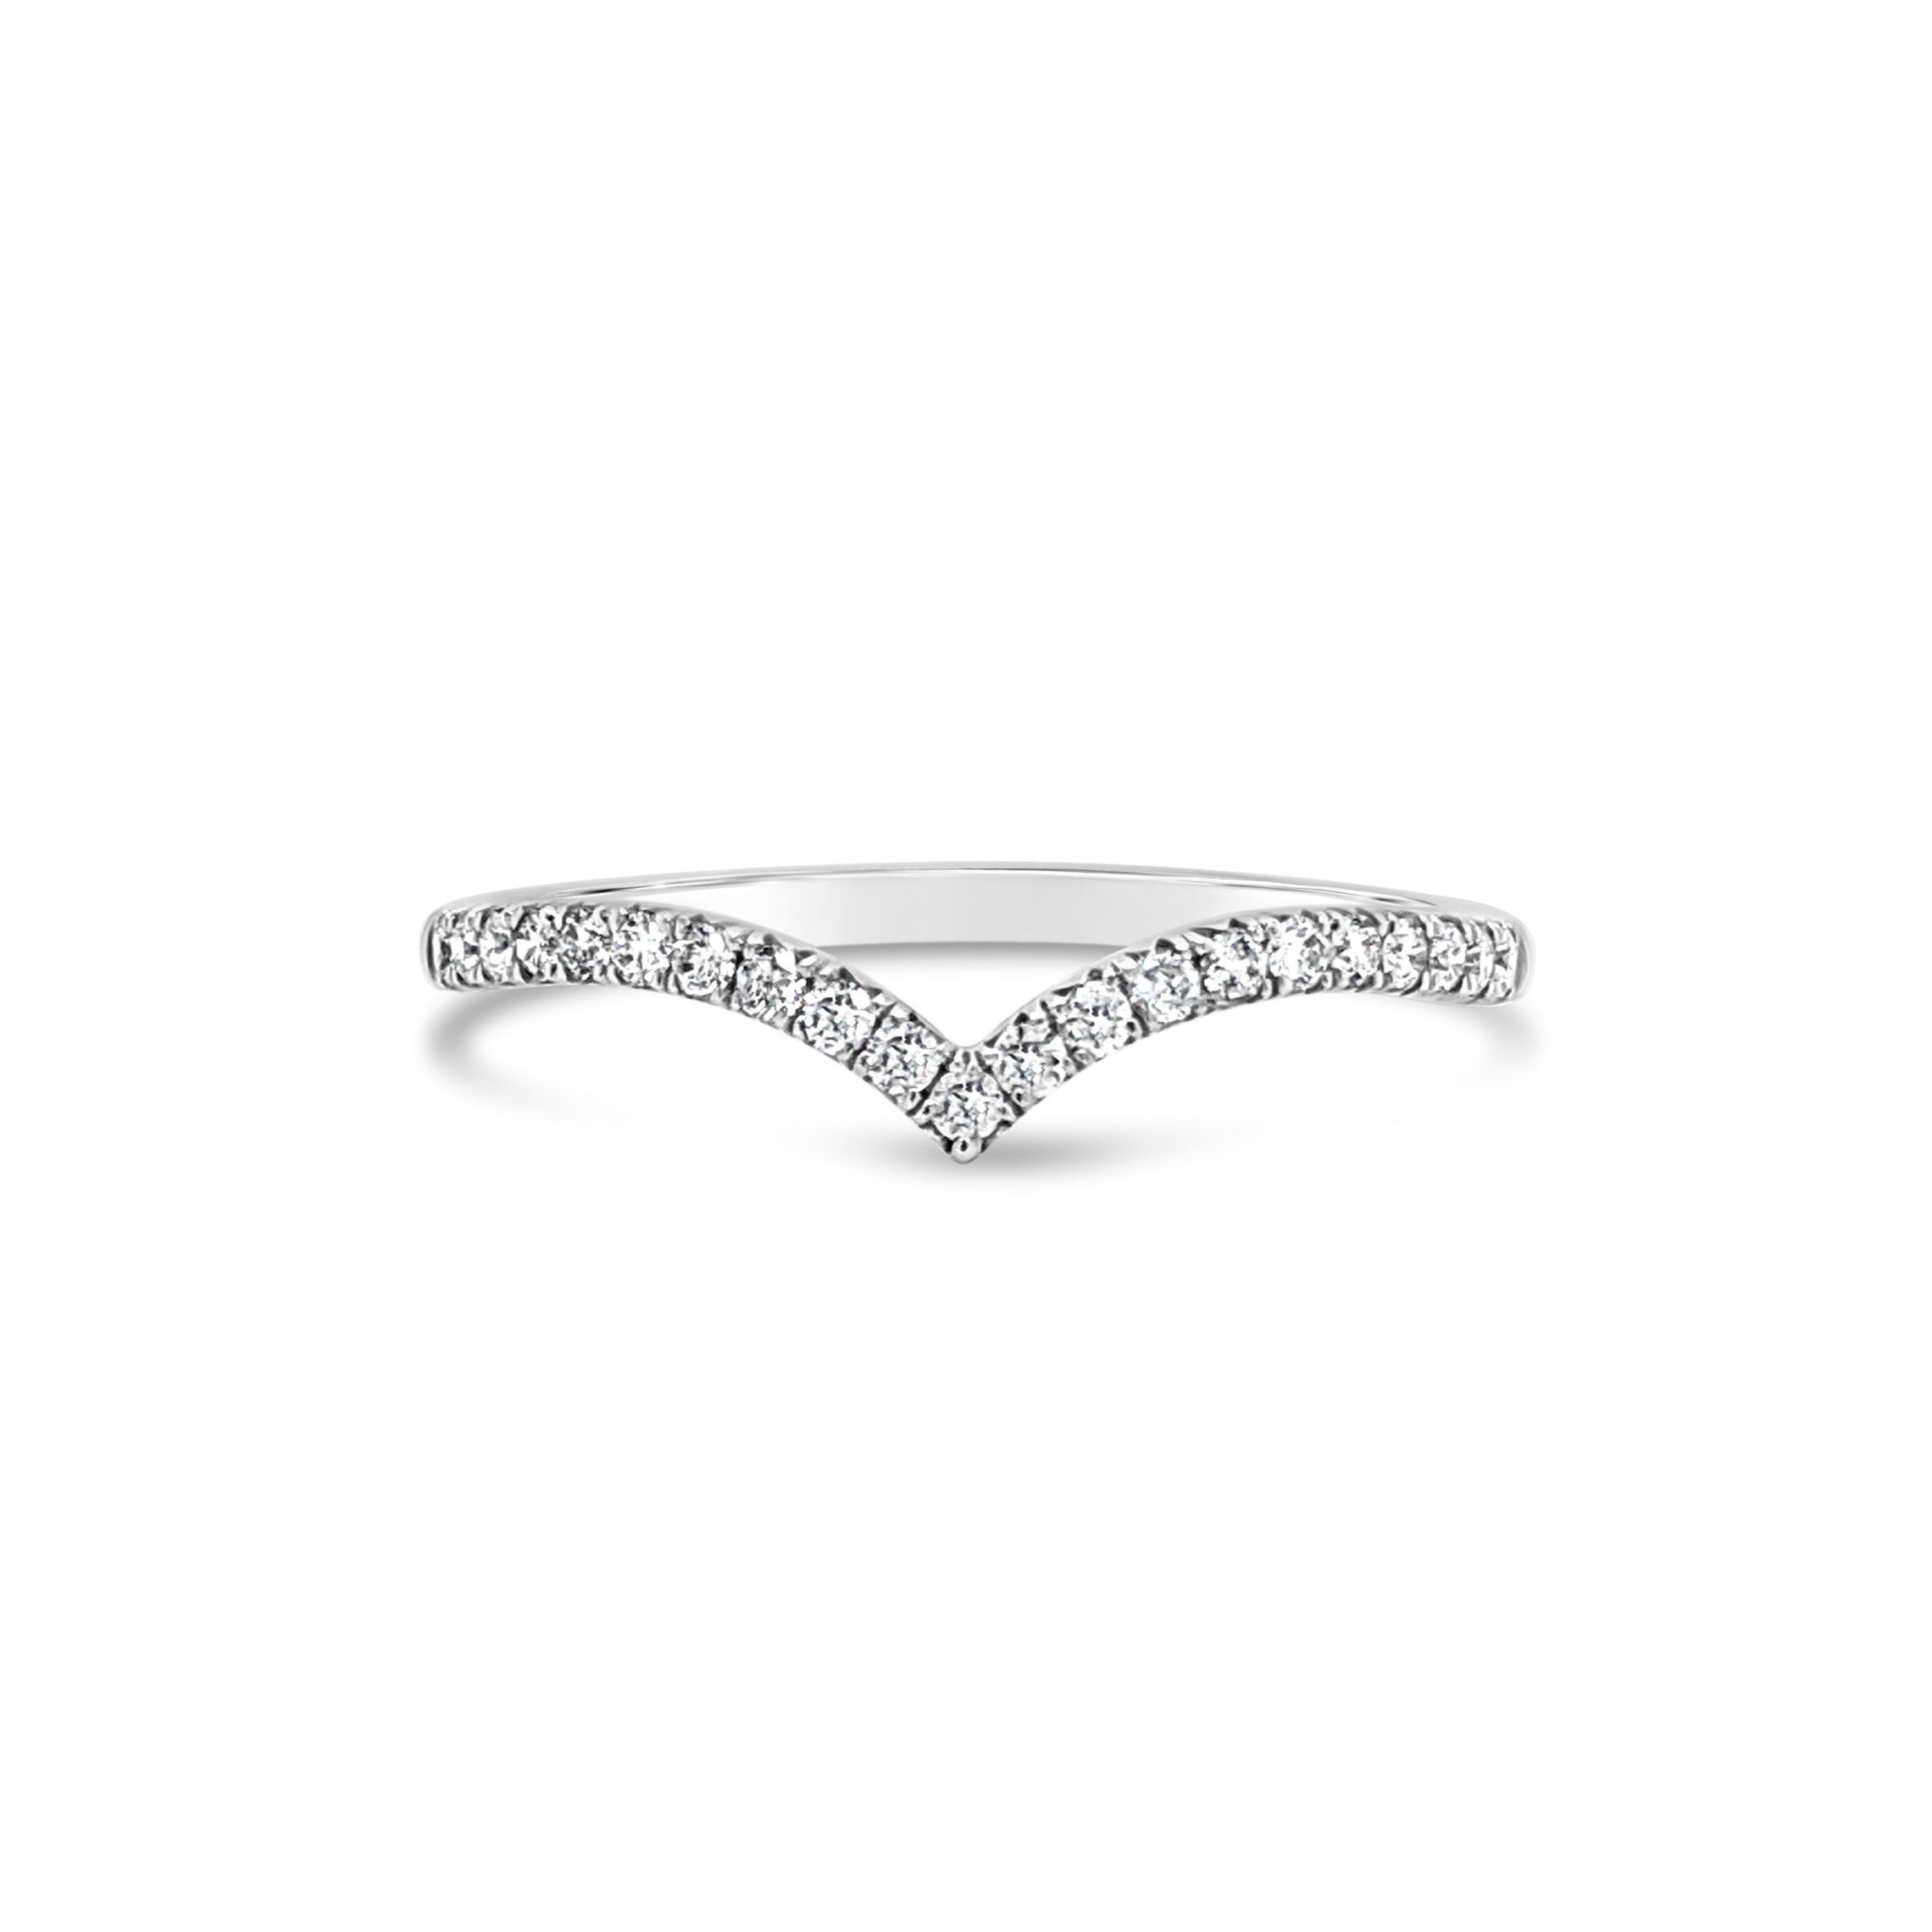 18ct white gold V style curved fitted band